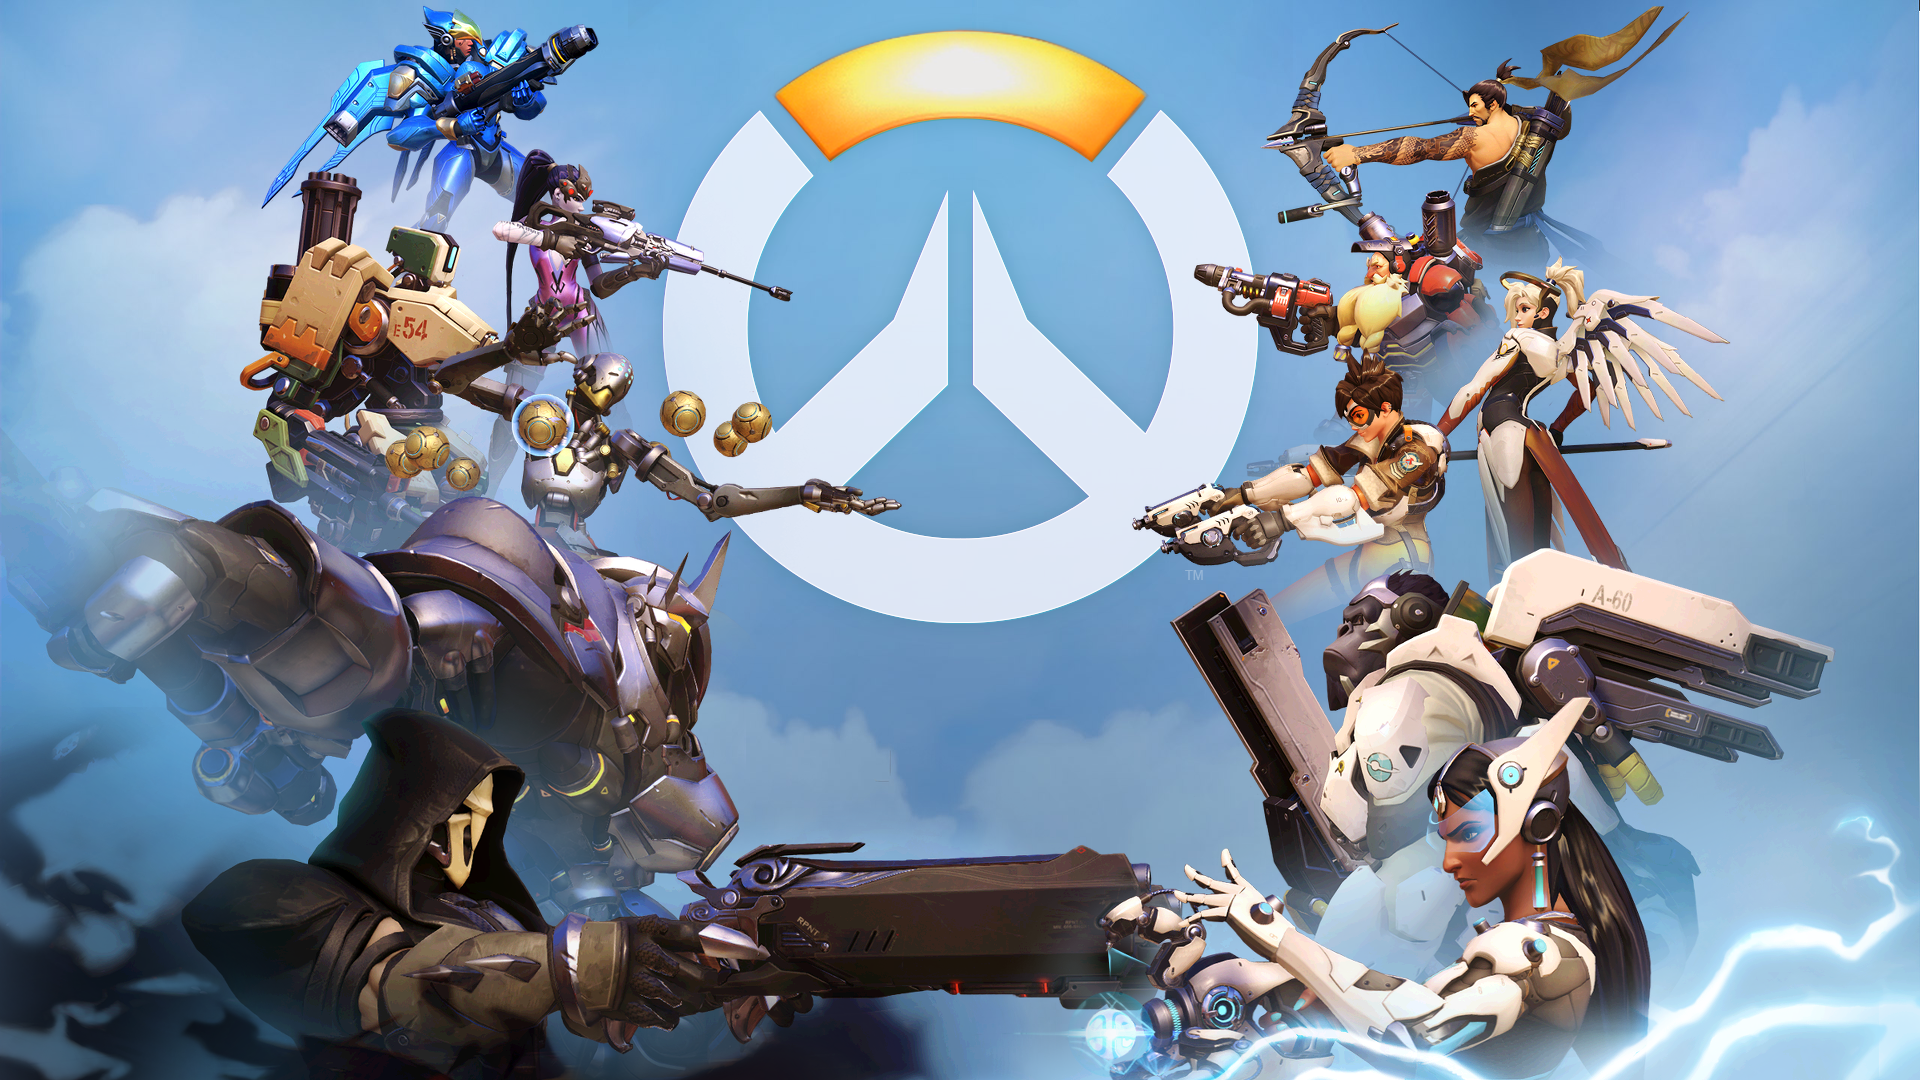 overwatch background 1280x720